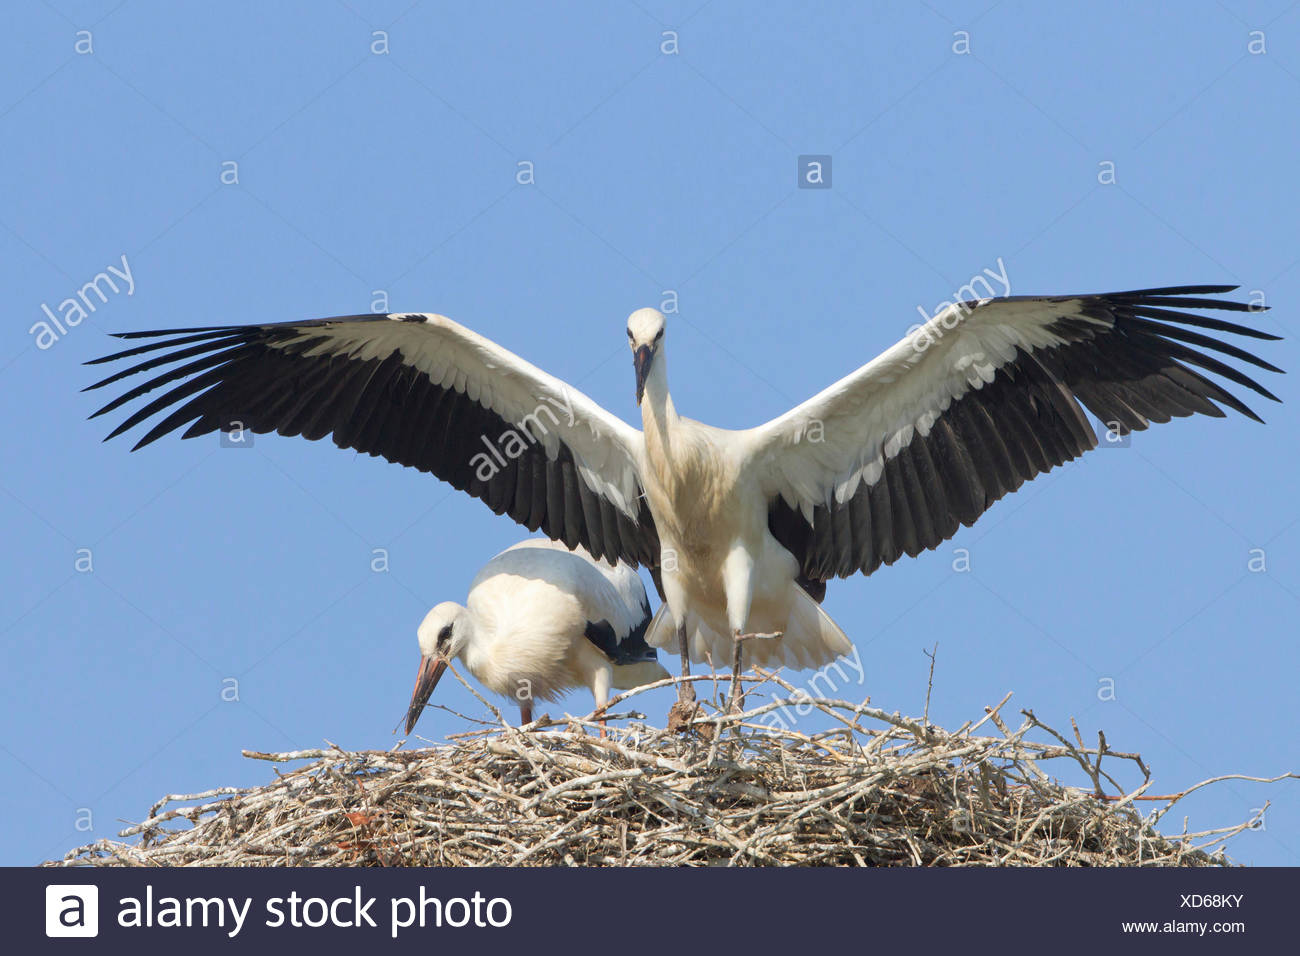 Young white storks (Ciconia ciconia), flying attempts at the nest, Hesse, Germany Stock Photo